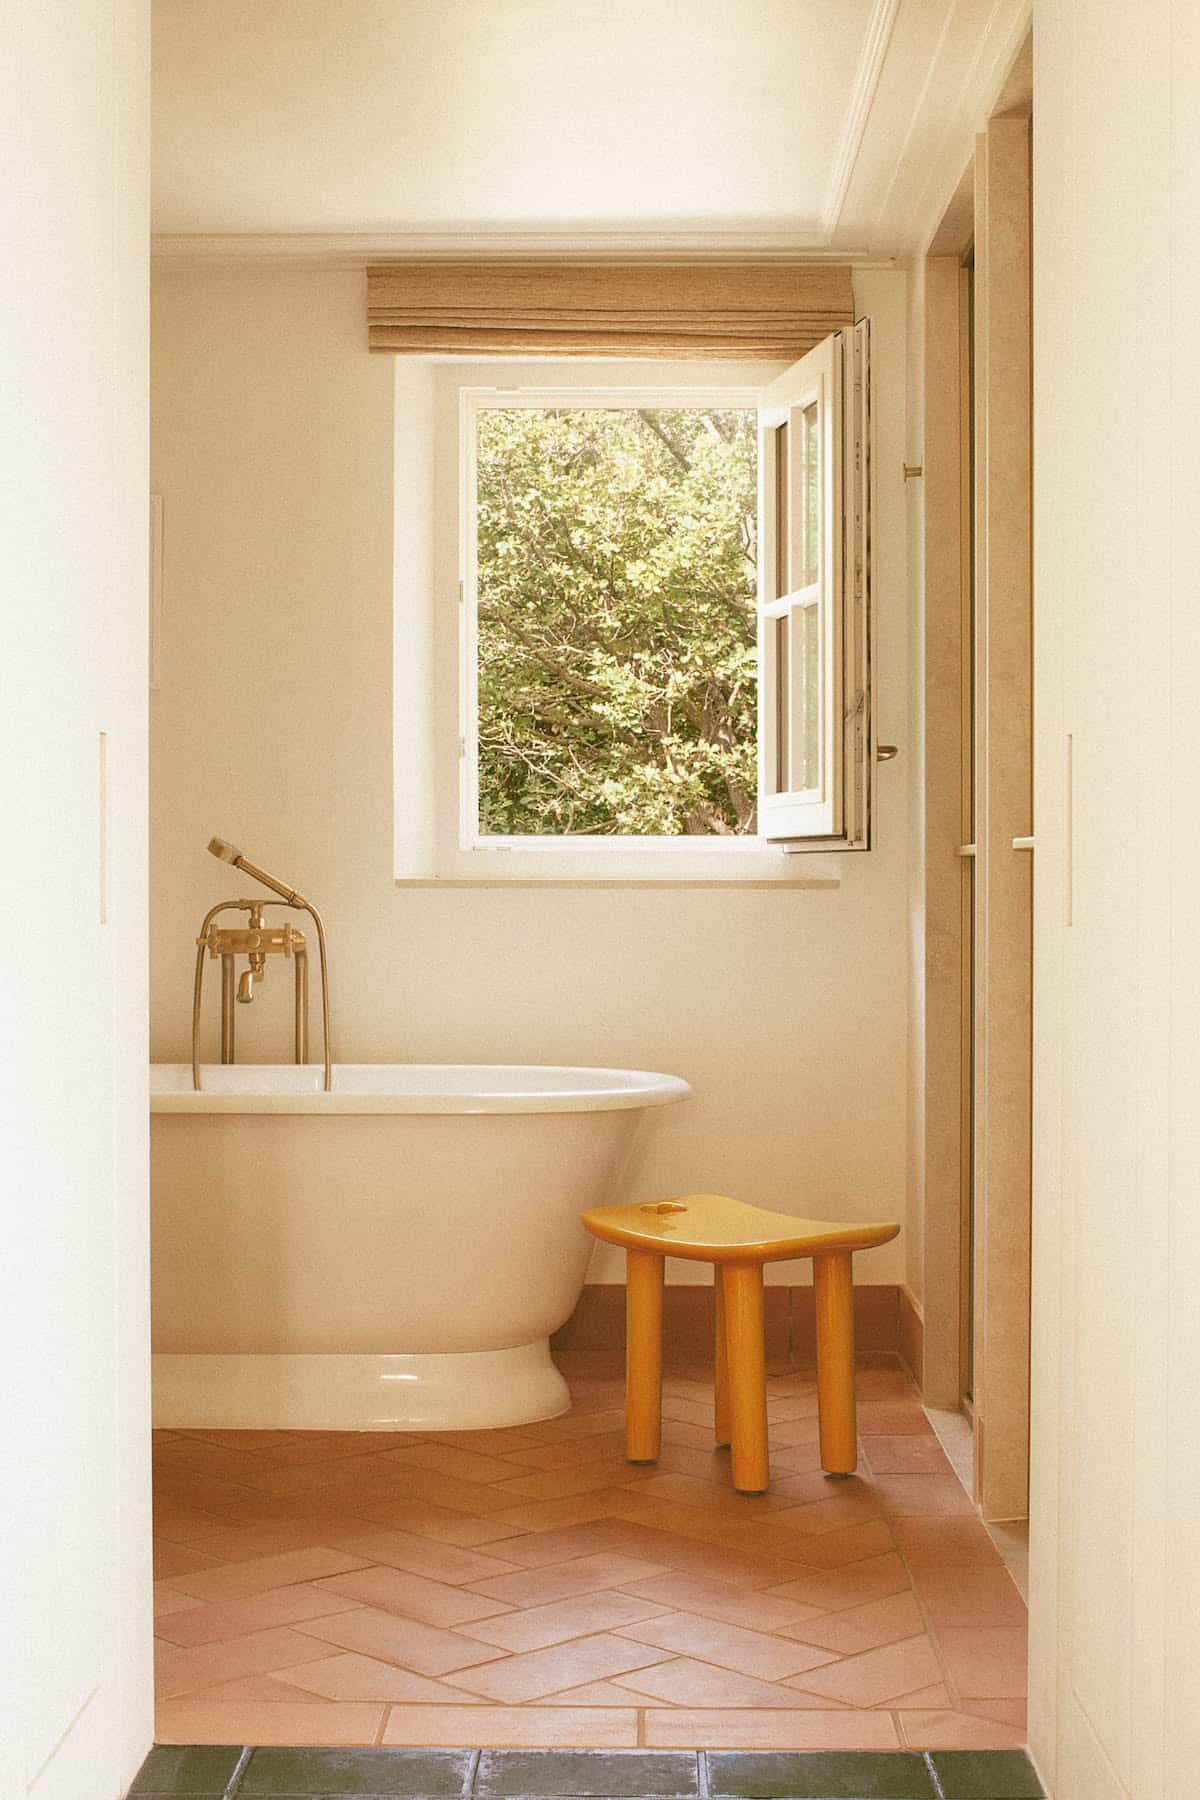 Bathroom with freestanding bathtub, a yellow stool and an open window overlooking green bushes